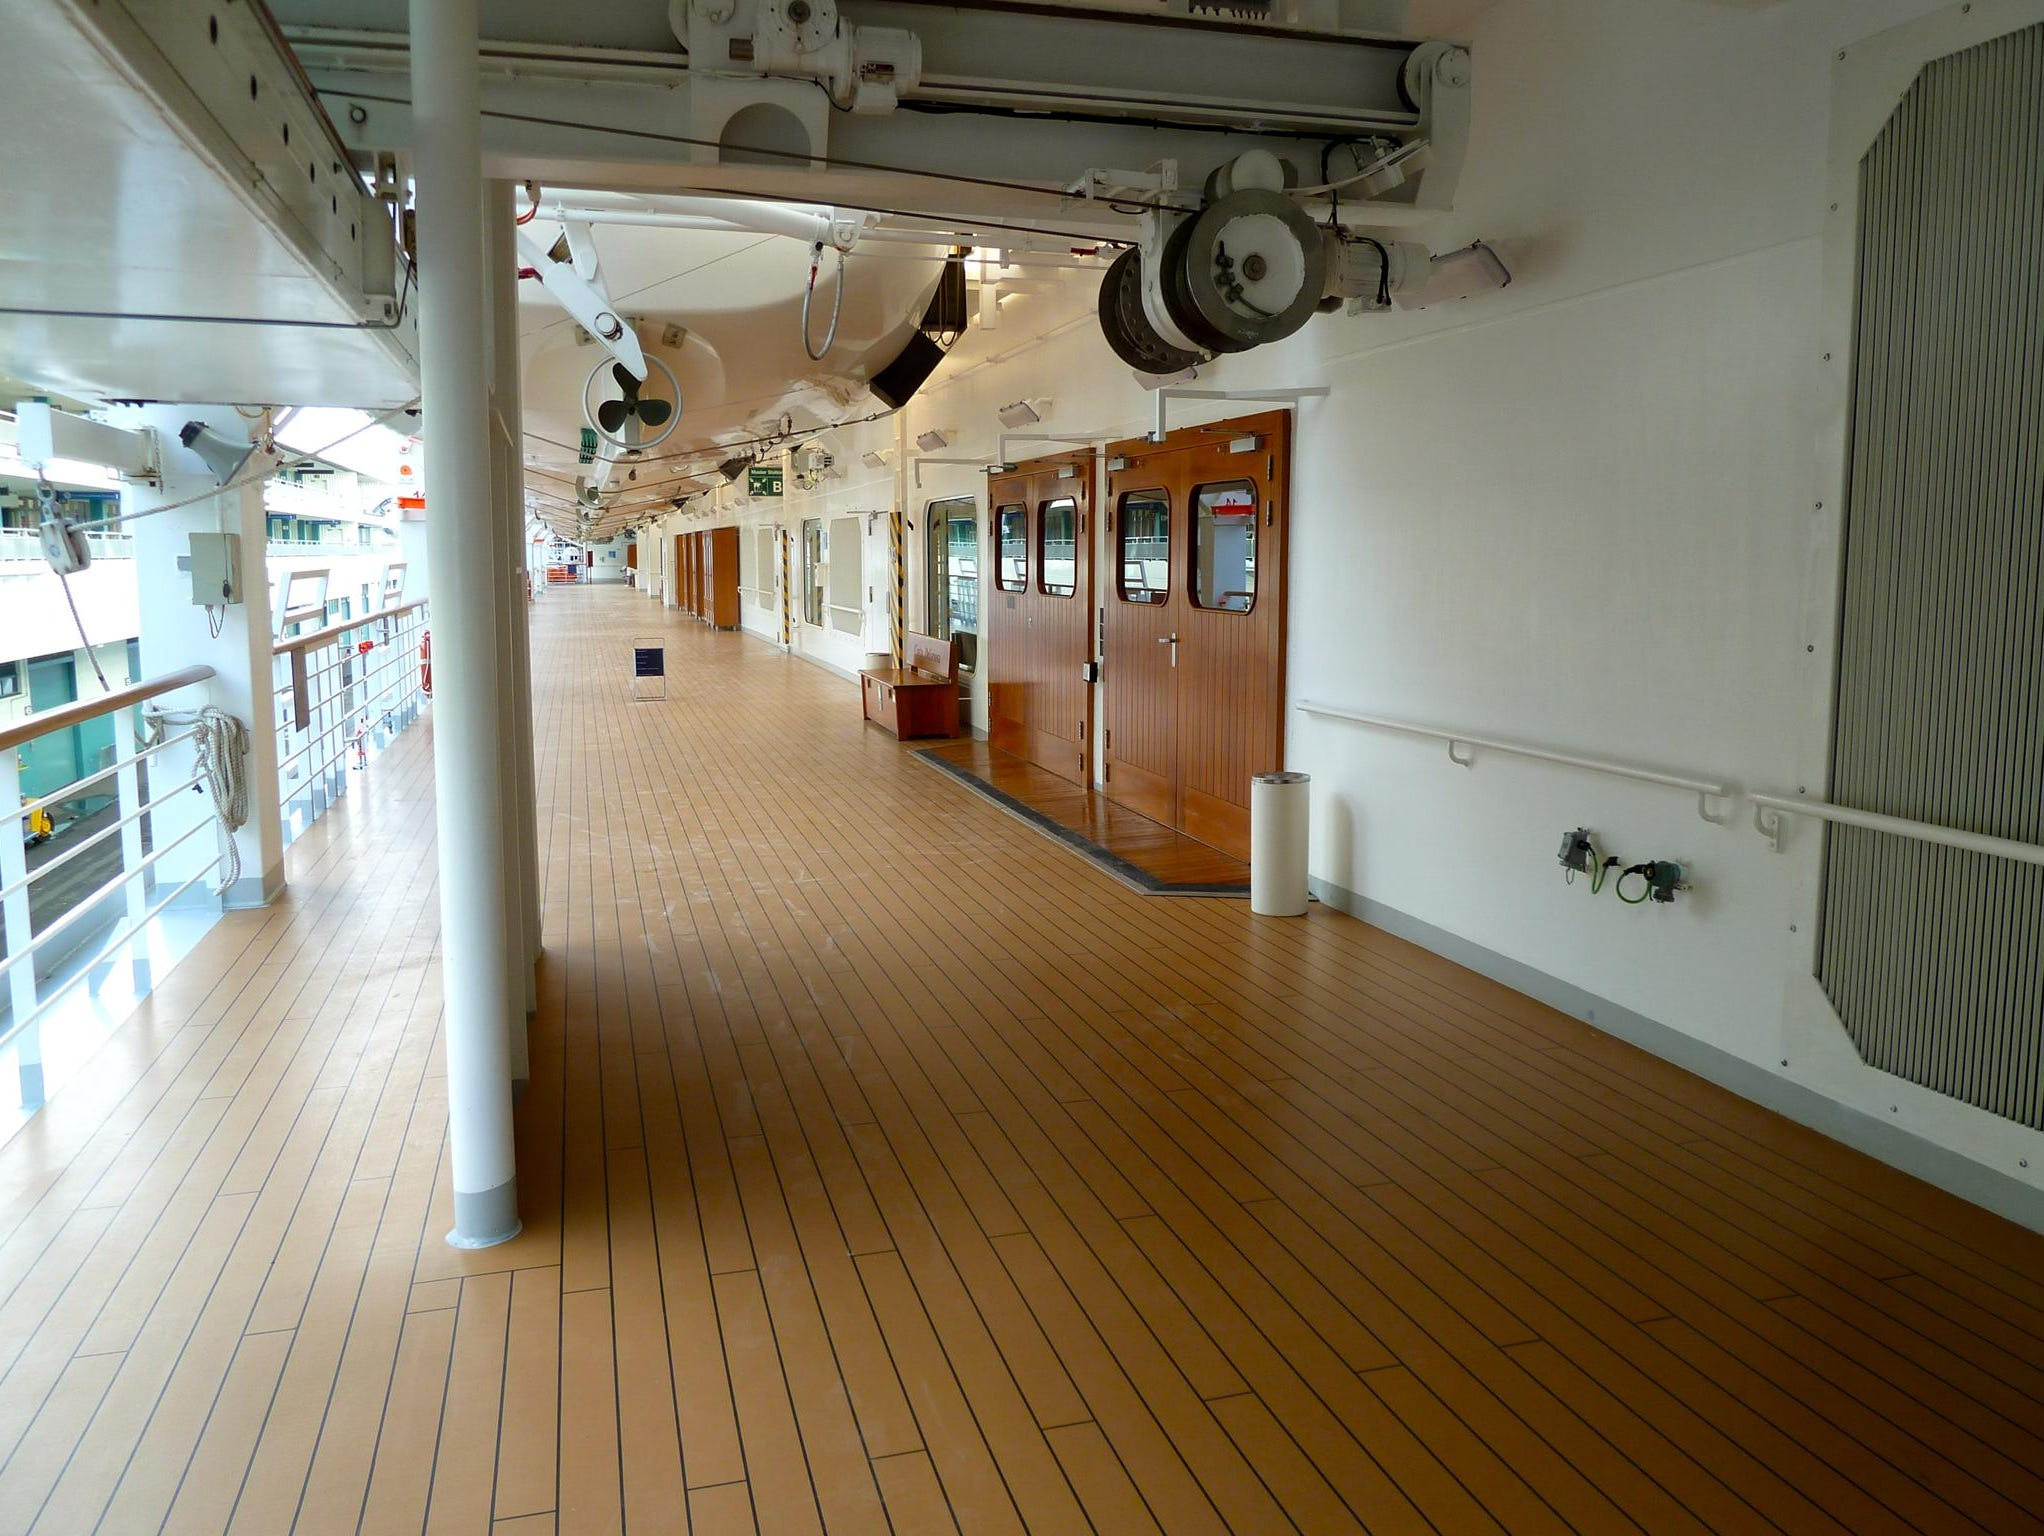 Azalea Deck (3) is devoted to public rooms and is encircled by a promenade, the fore and aft portions of which narrow considerably.